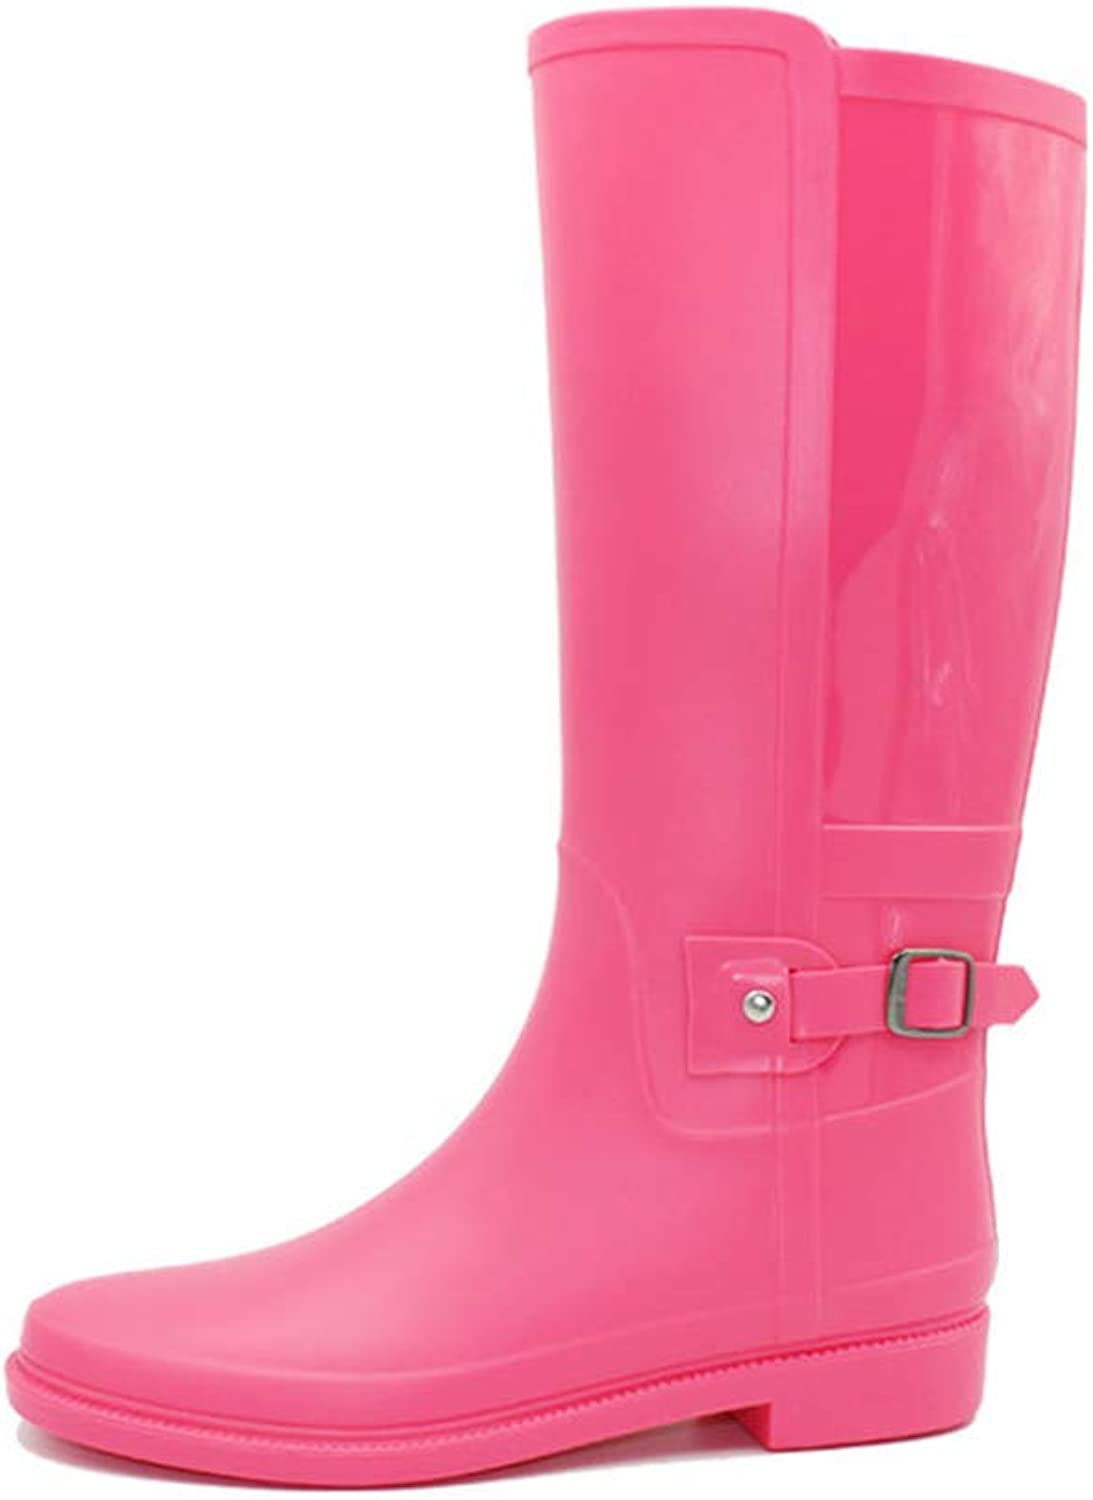 SUNNY Store Women's Mid Calf Waterproof Rubber Garden Rainboots